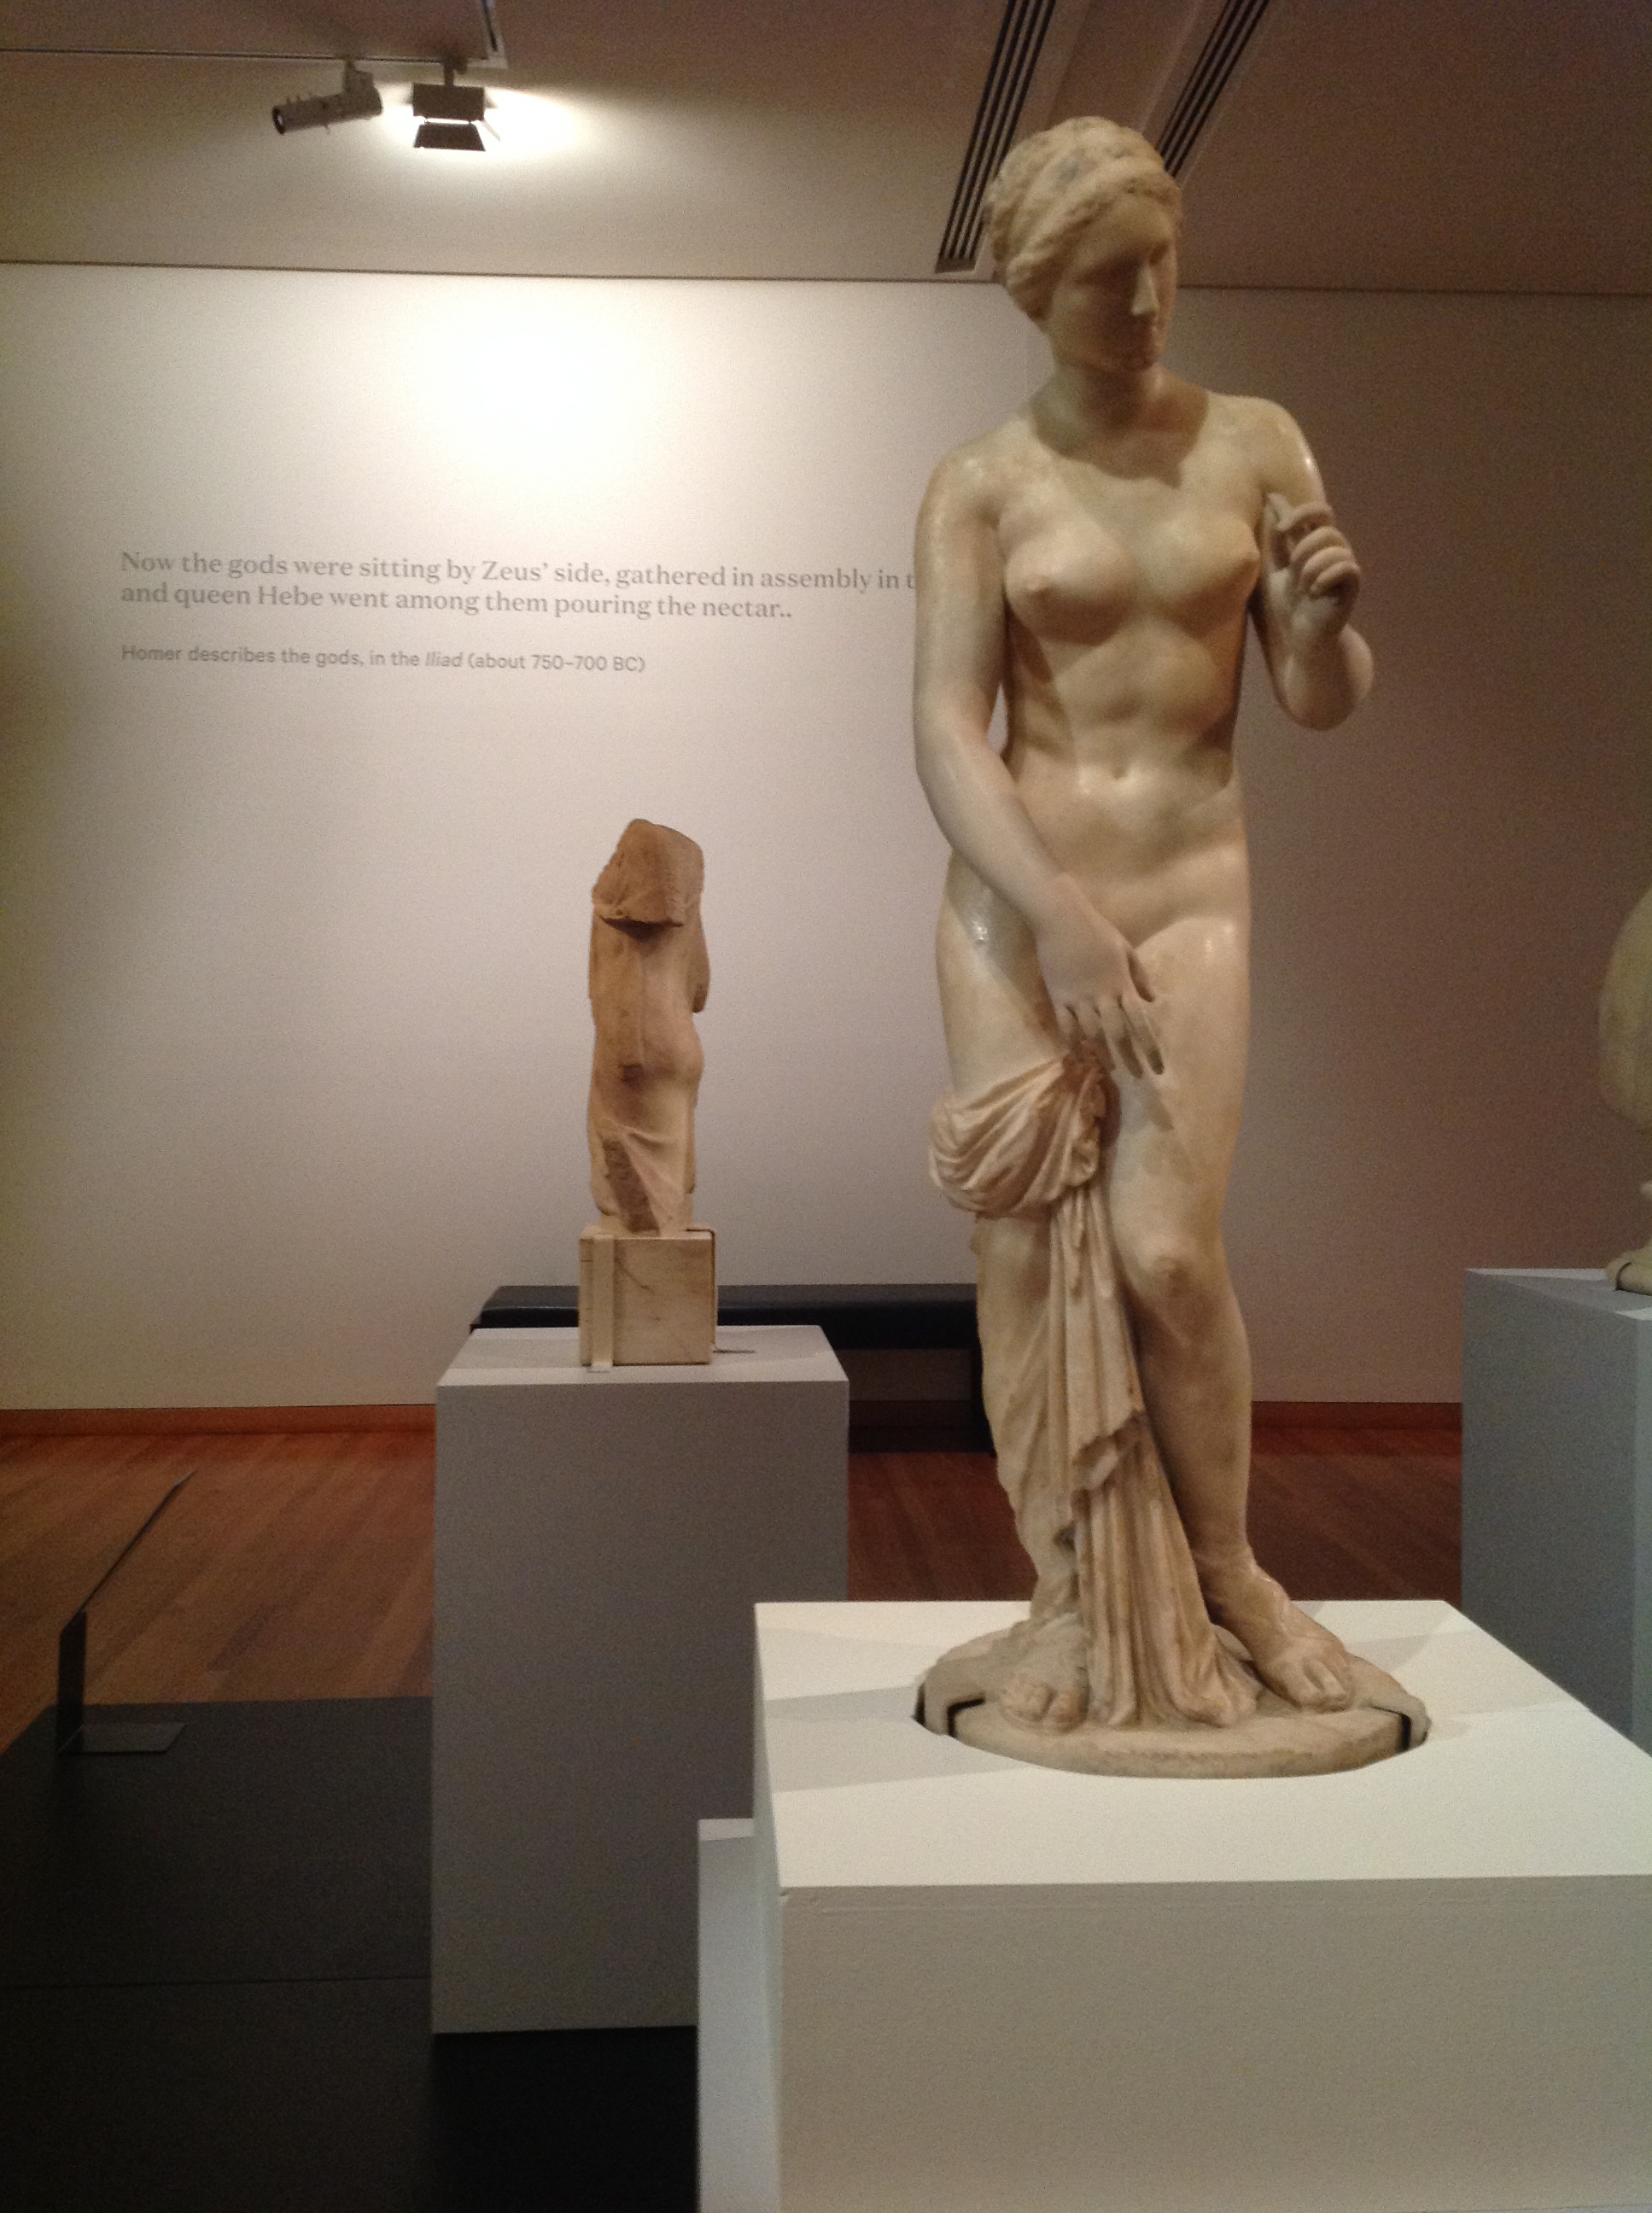 greek sculpture and developments essay The hellenistic age marks the transformation of greek society from the localized and merged architectural space and sculpture by the placement of heroic.